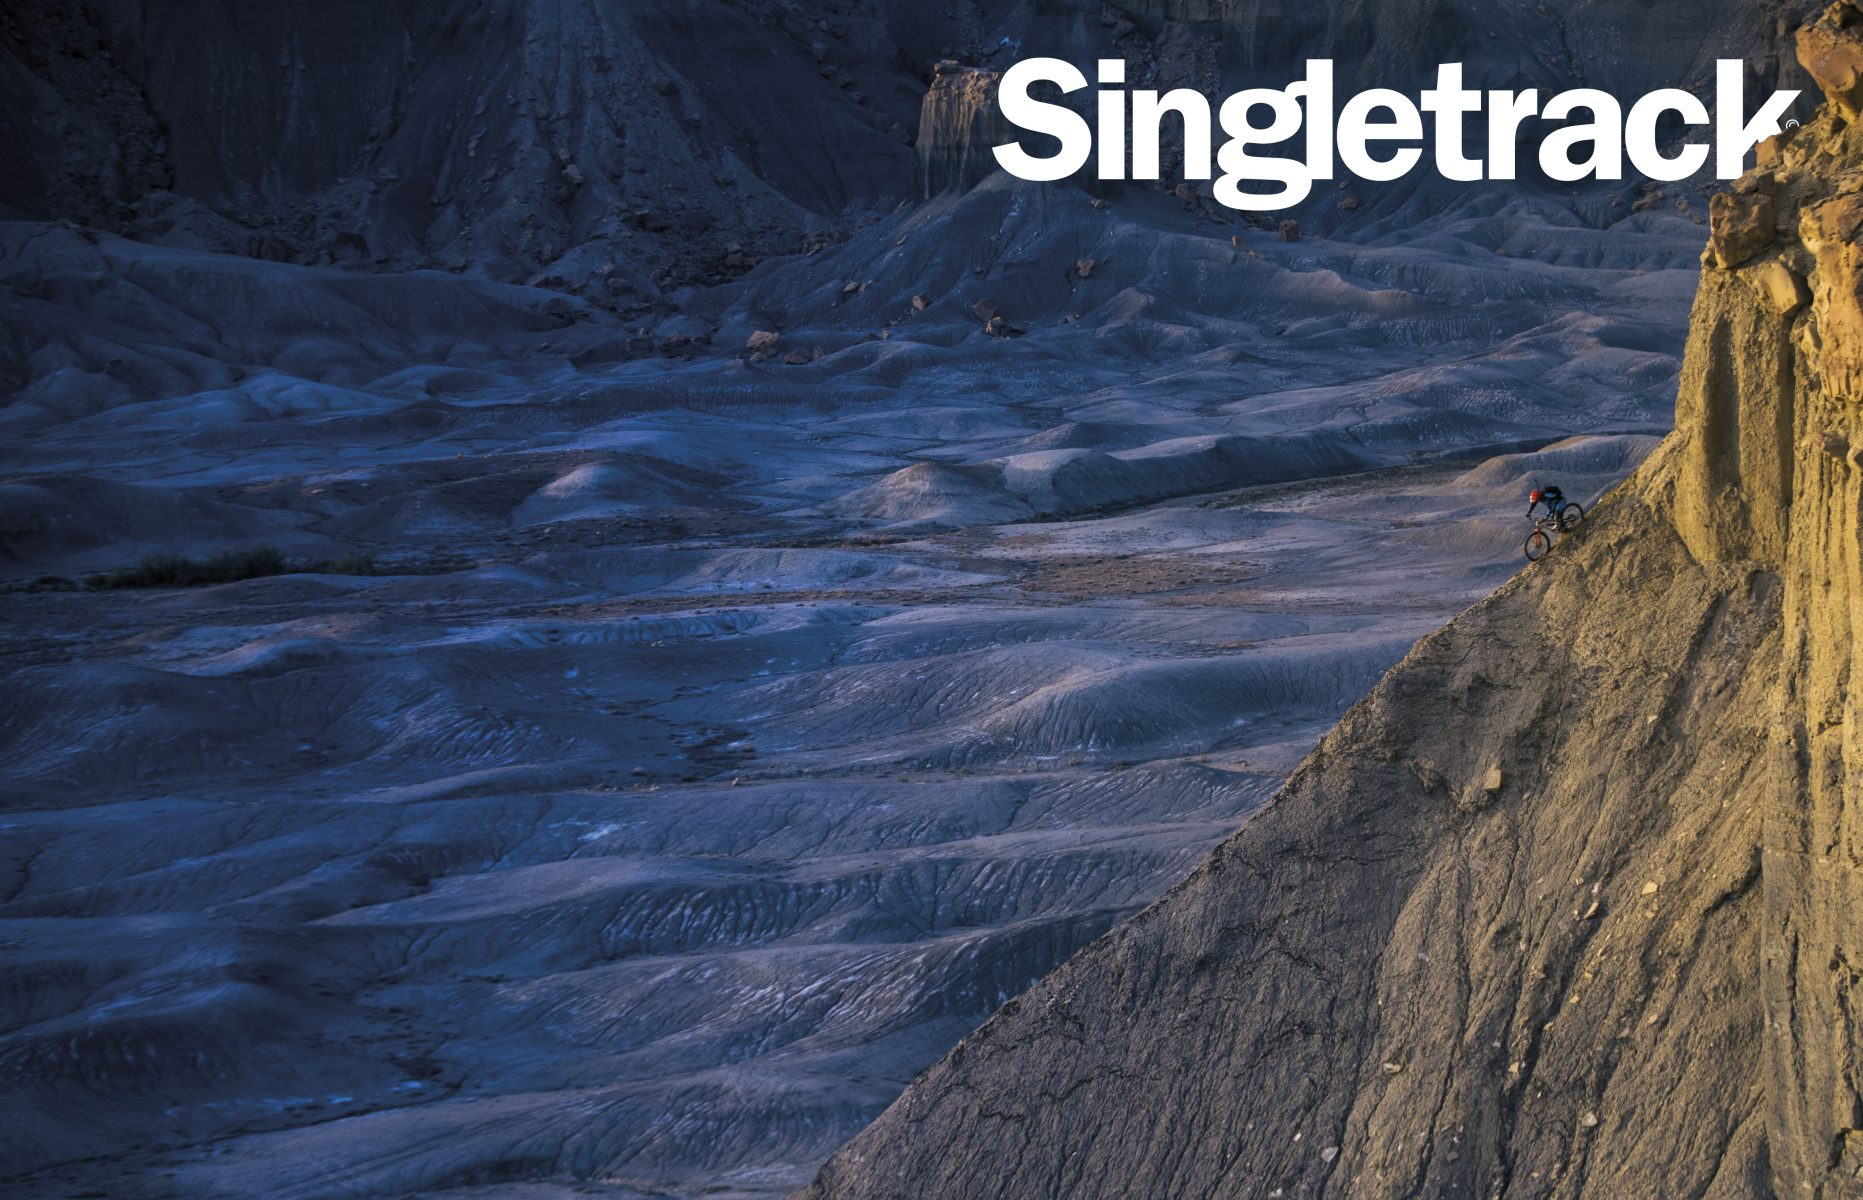 singletrack cover issue 123 magazine